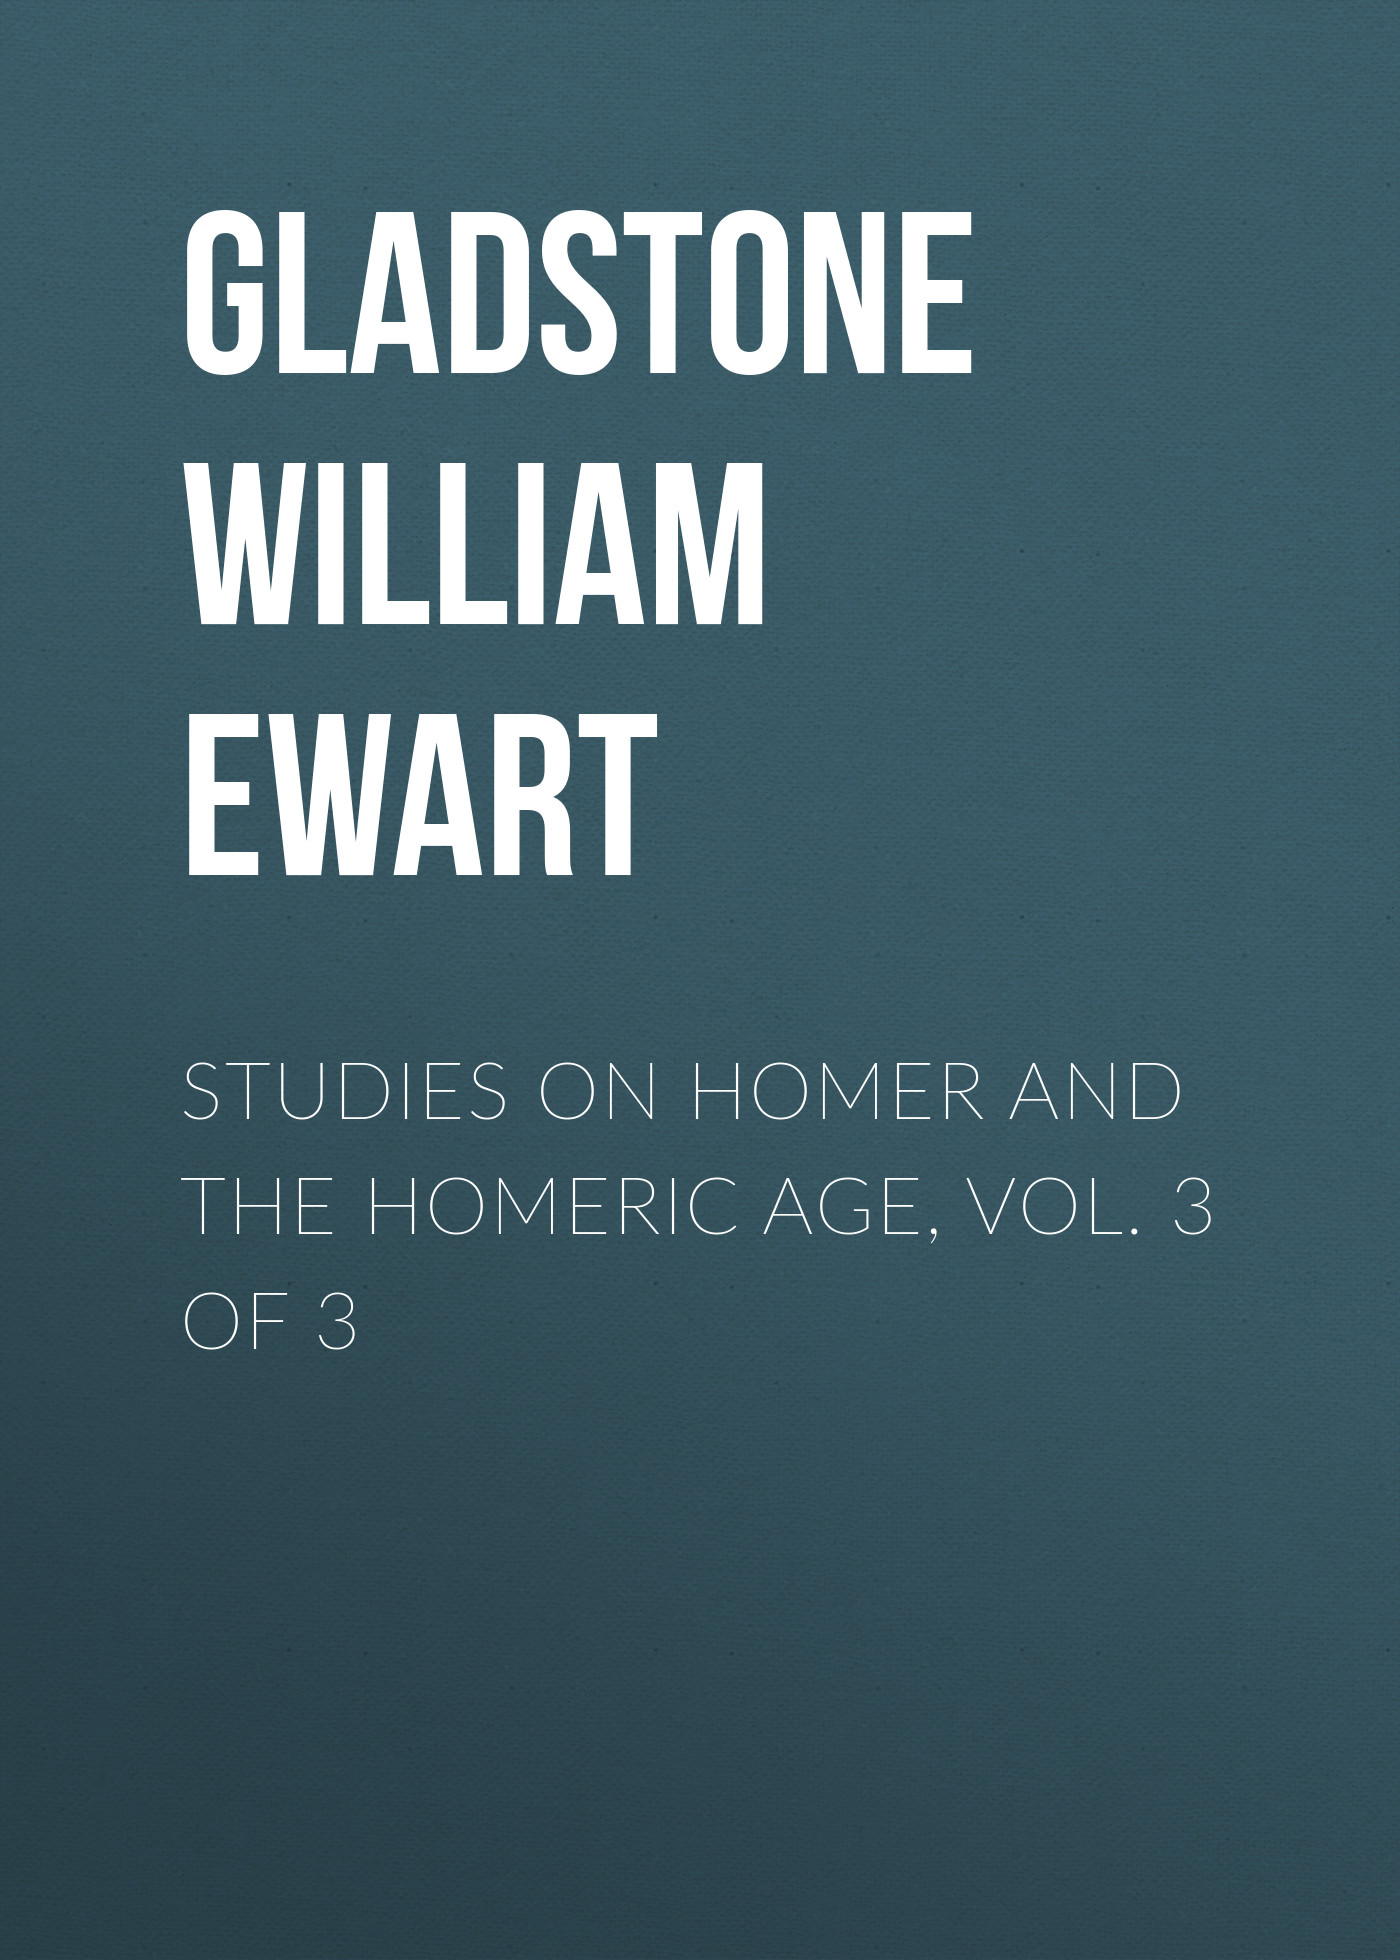 Gladstone William Ewart Studies on Homer and the Homeric Age, Vol. 3 of 3 gladstone william ewart studies on homer and the homeric age vol 3 of 3